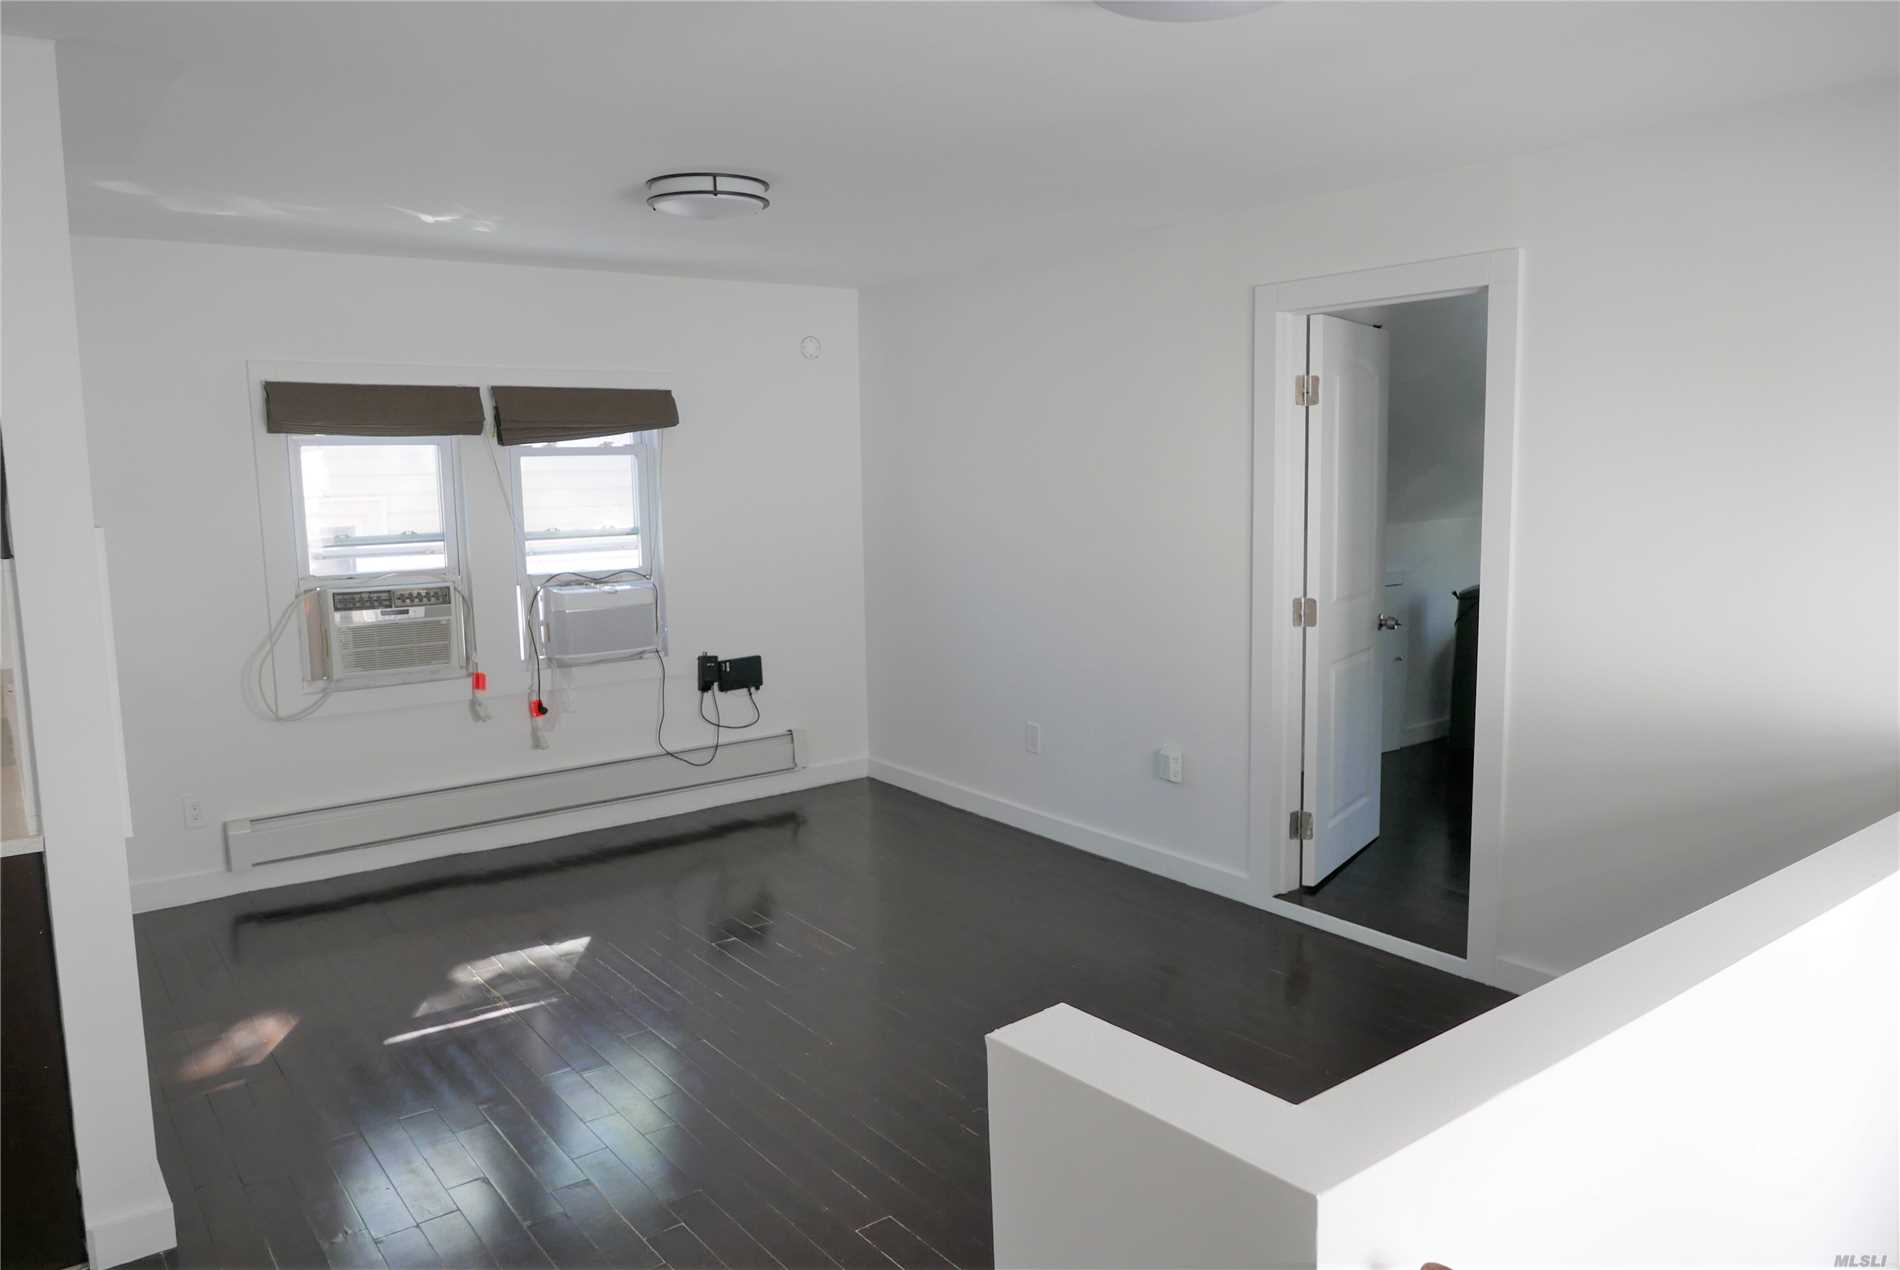 Enjoy this renovated three bedroom apartment. Gourmet kitchen equipped with custom cabinetry, stainless steel appliances. Bright, quiet, hardwood floors and high ceilings. Extra closet space. Custom Cabinets. Walking distance to Key Food. Express bus to Flushing and Forest Hill.